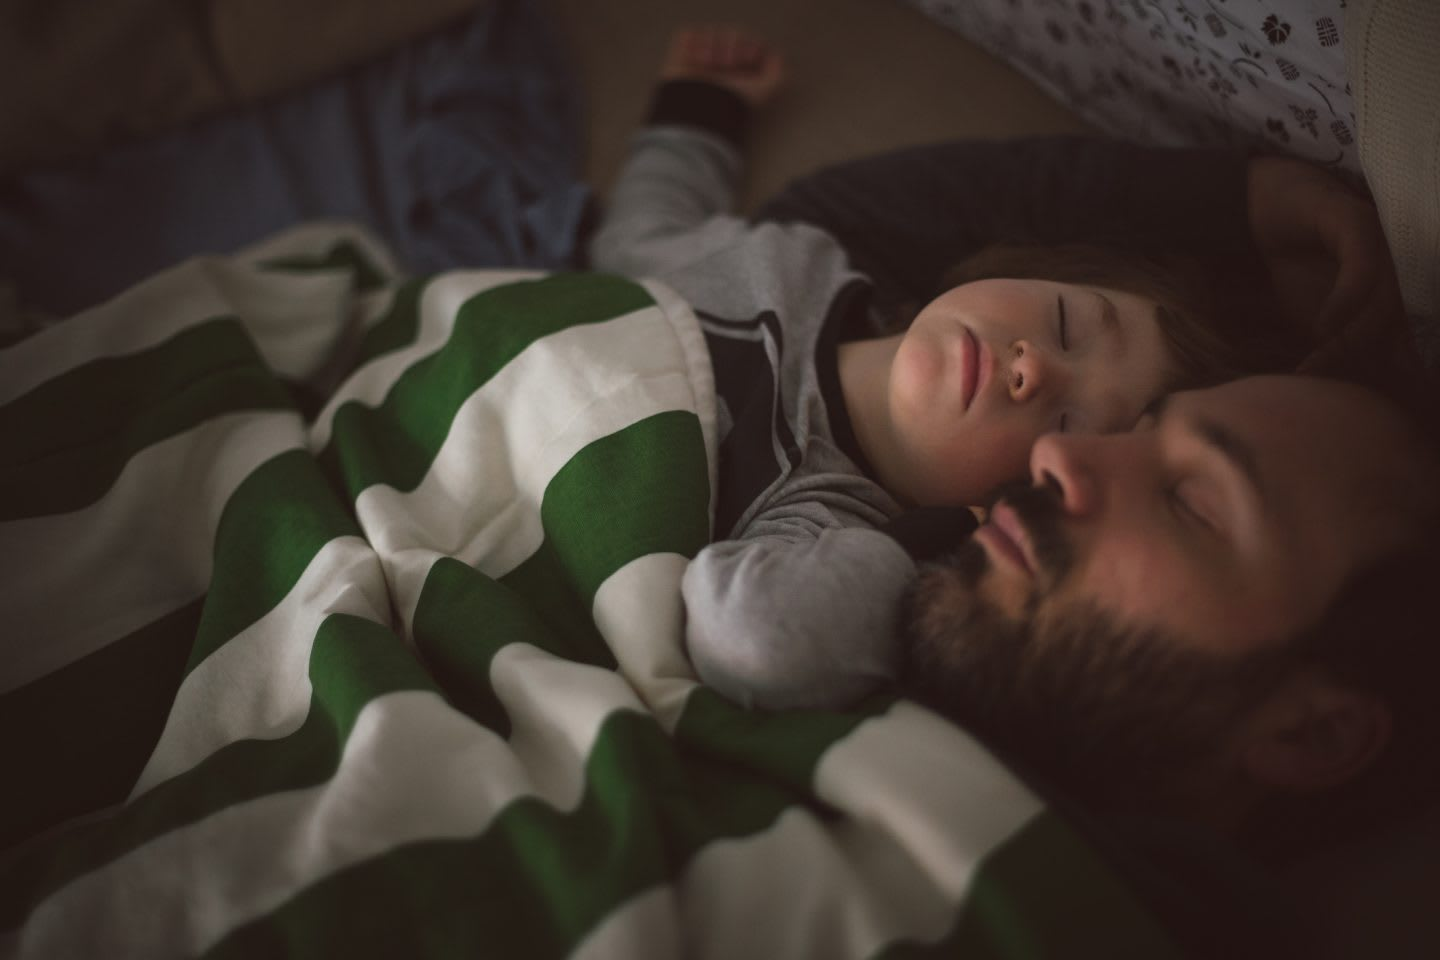 Dad and toddler sleeping together in the sofa, rest, recovery, family, sleep